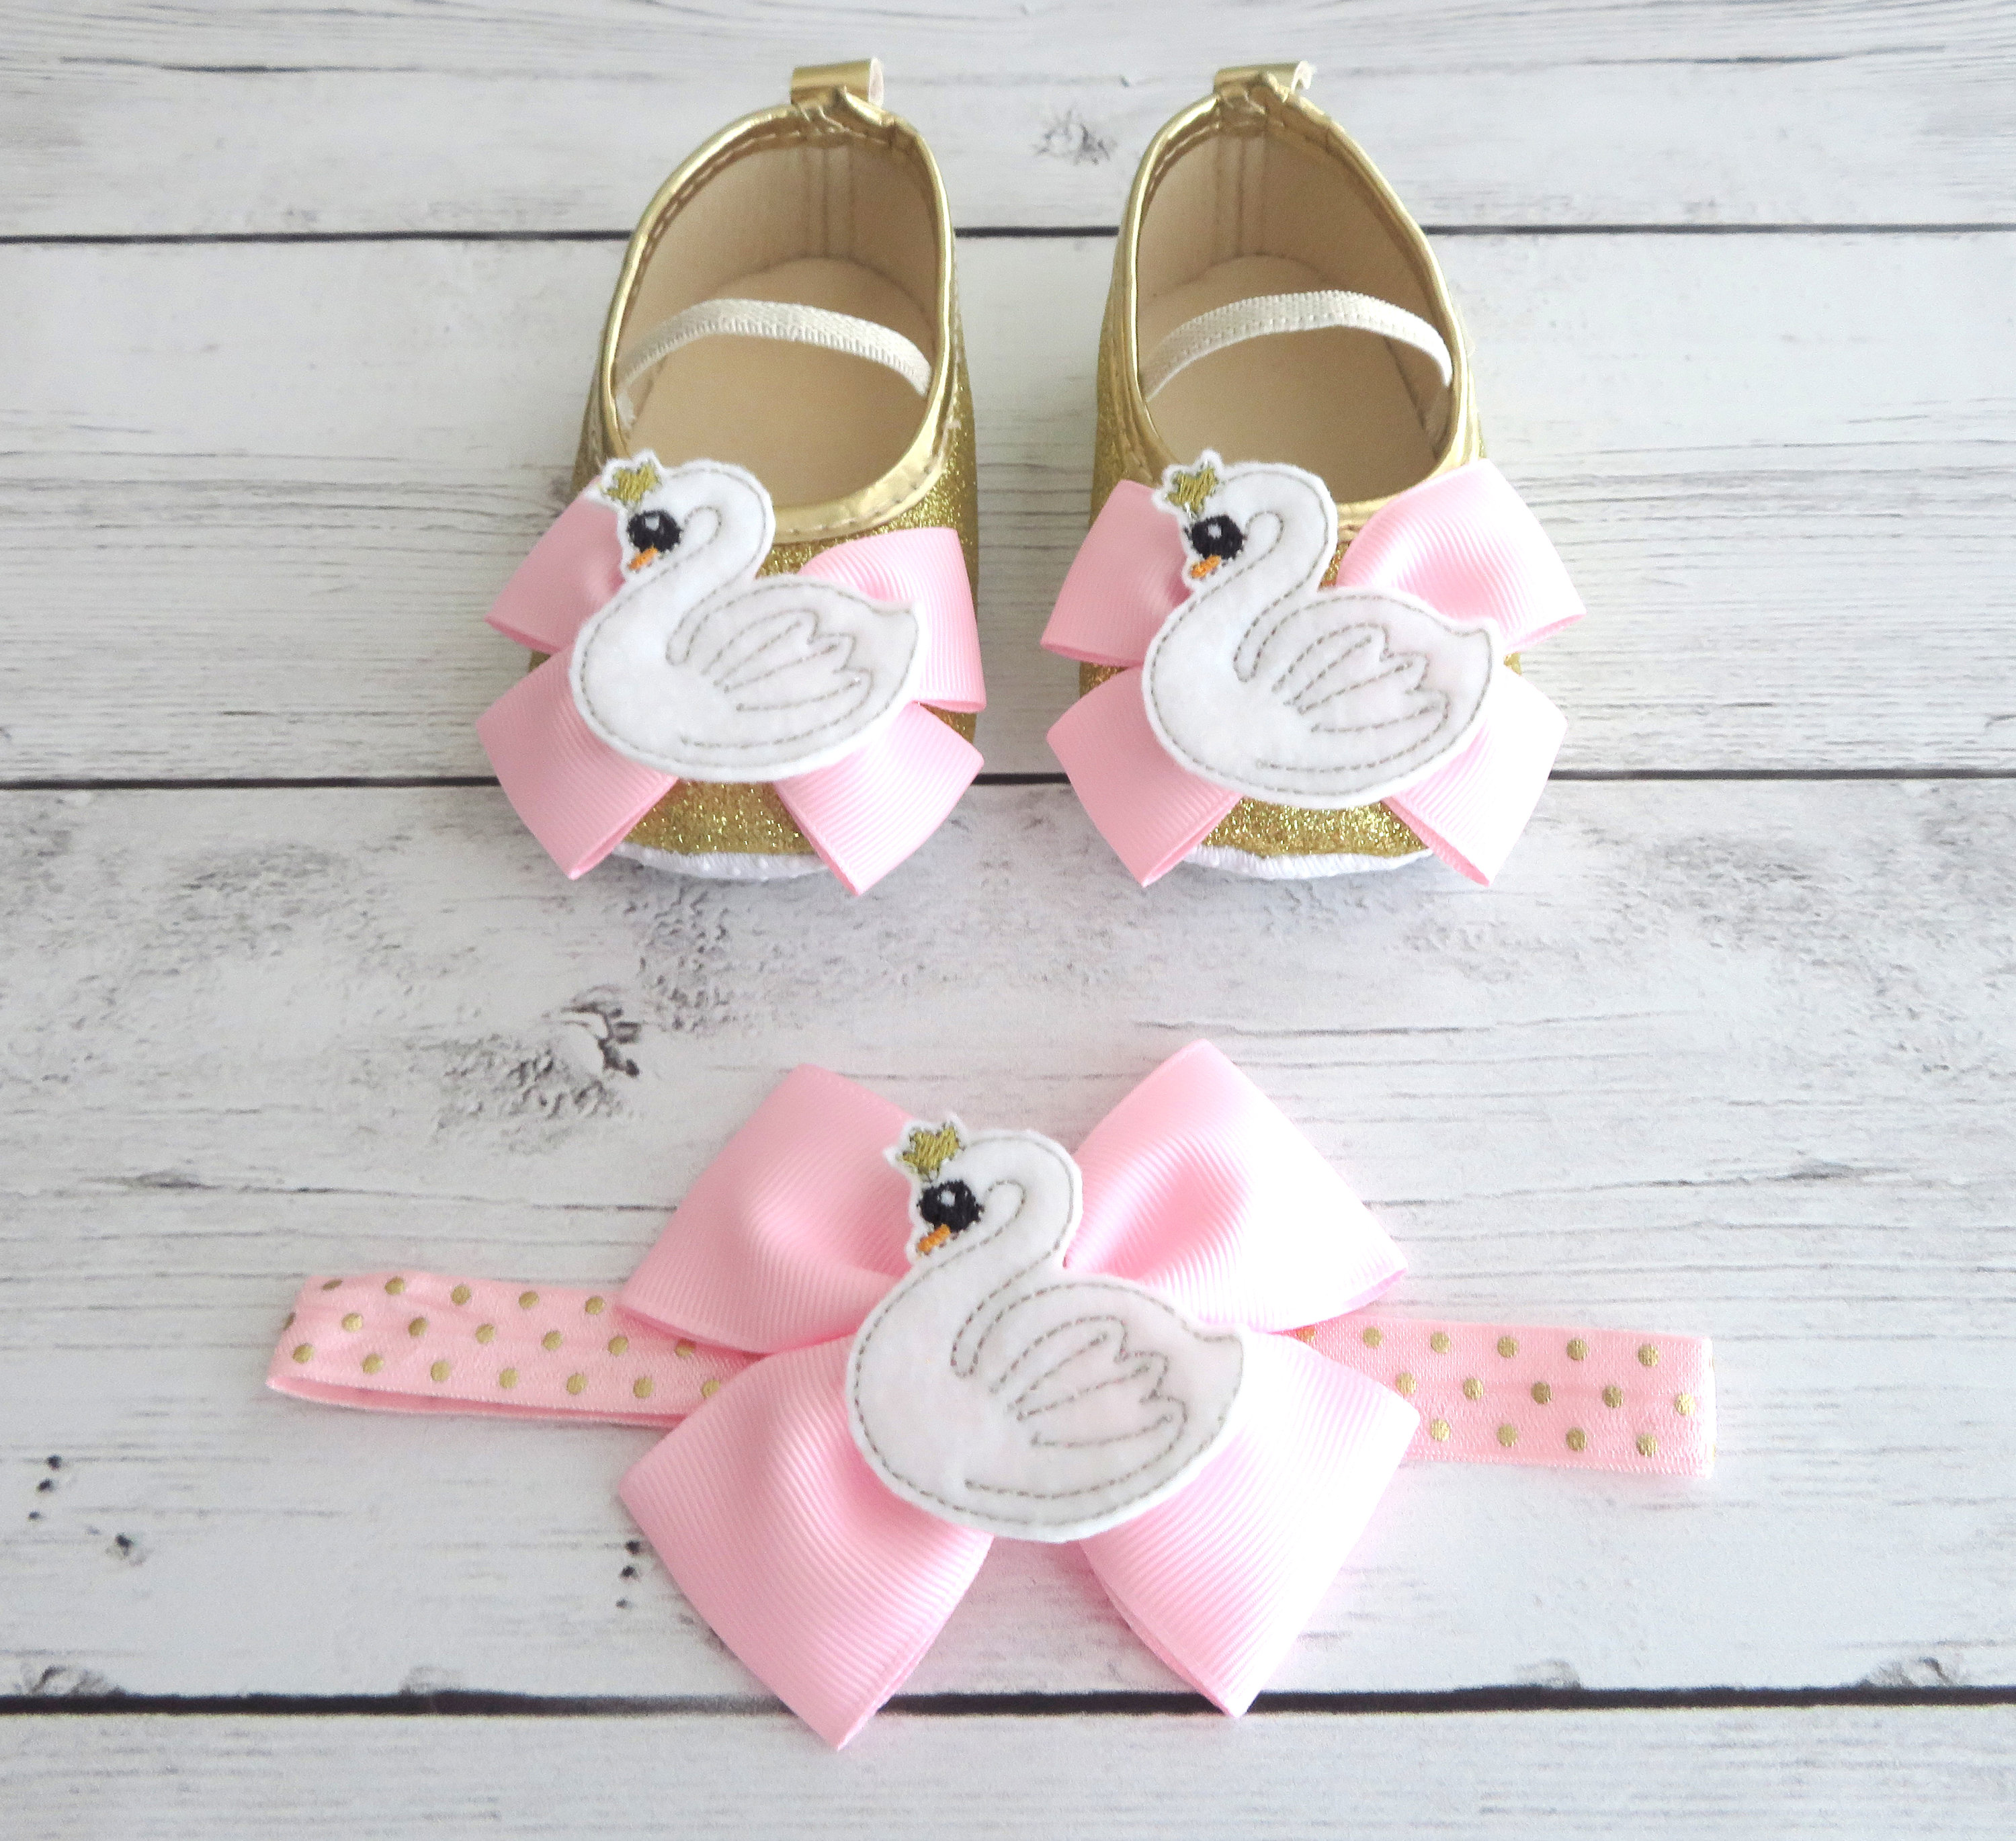 Swan First Birthday Shoes & Headband for Girl in light pink and gold -1st bday girl, birthday shoes, toddler shoes, swan 1st bday, swan lake